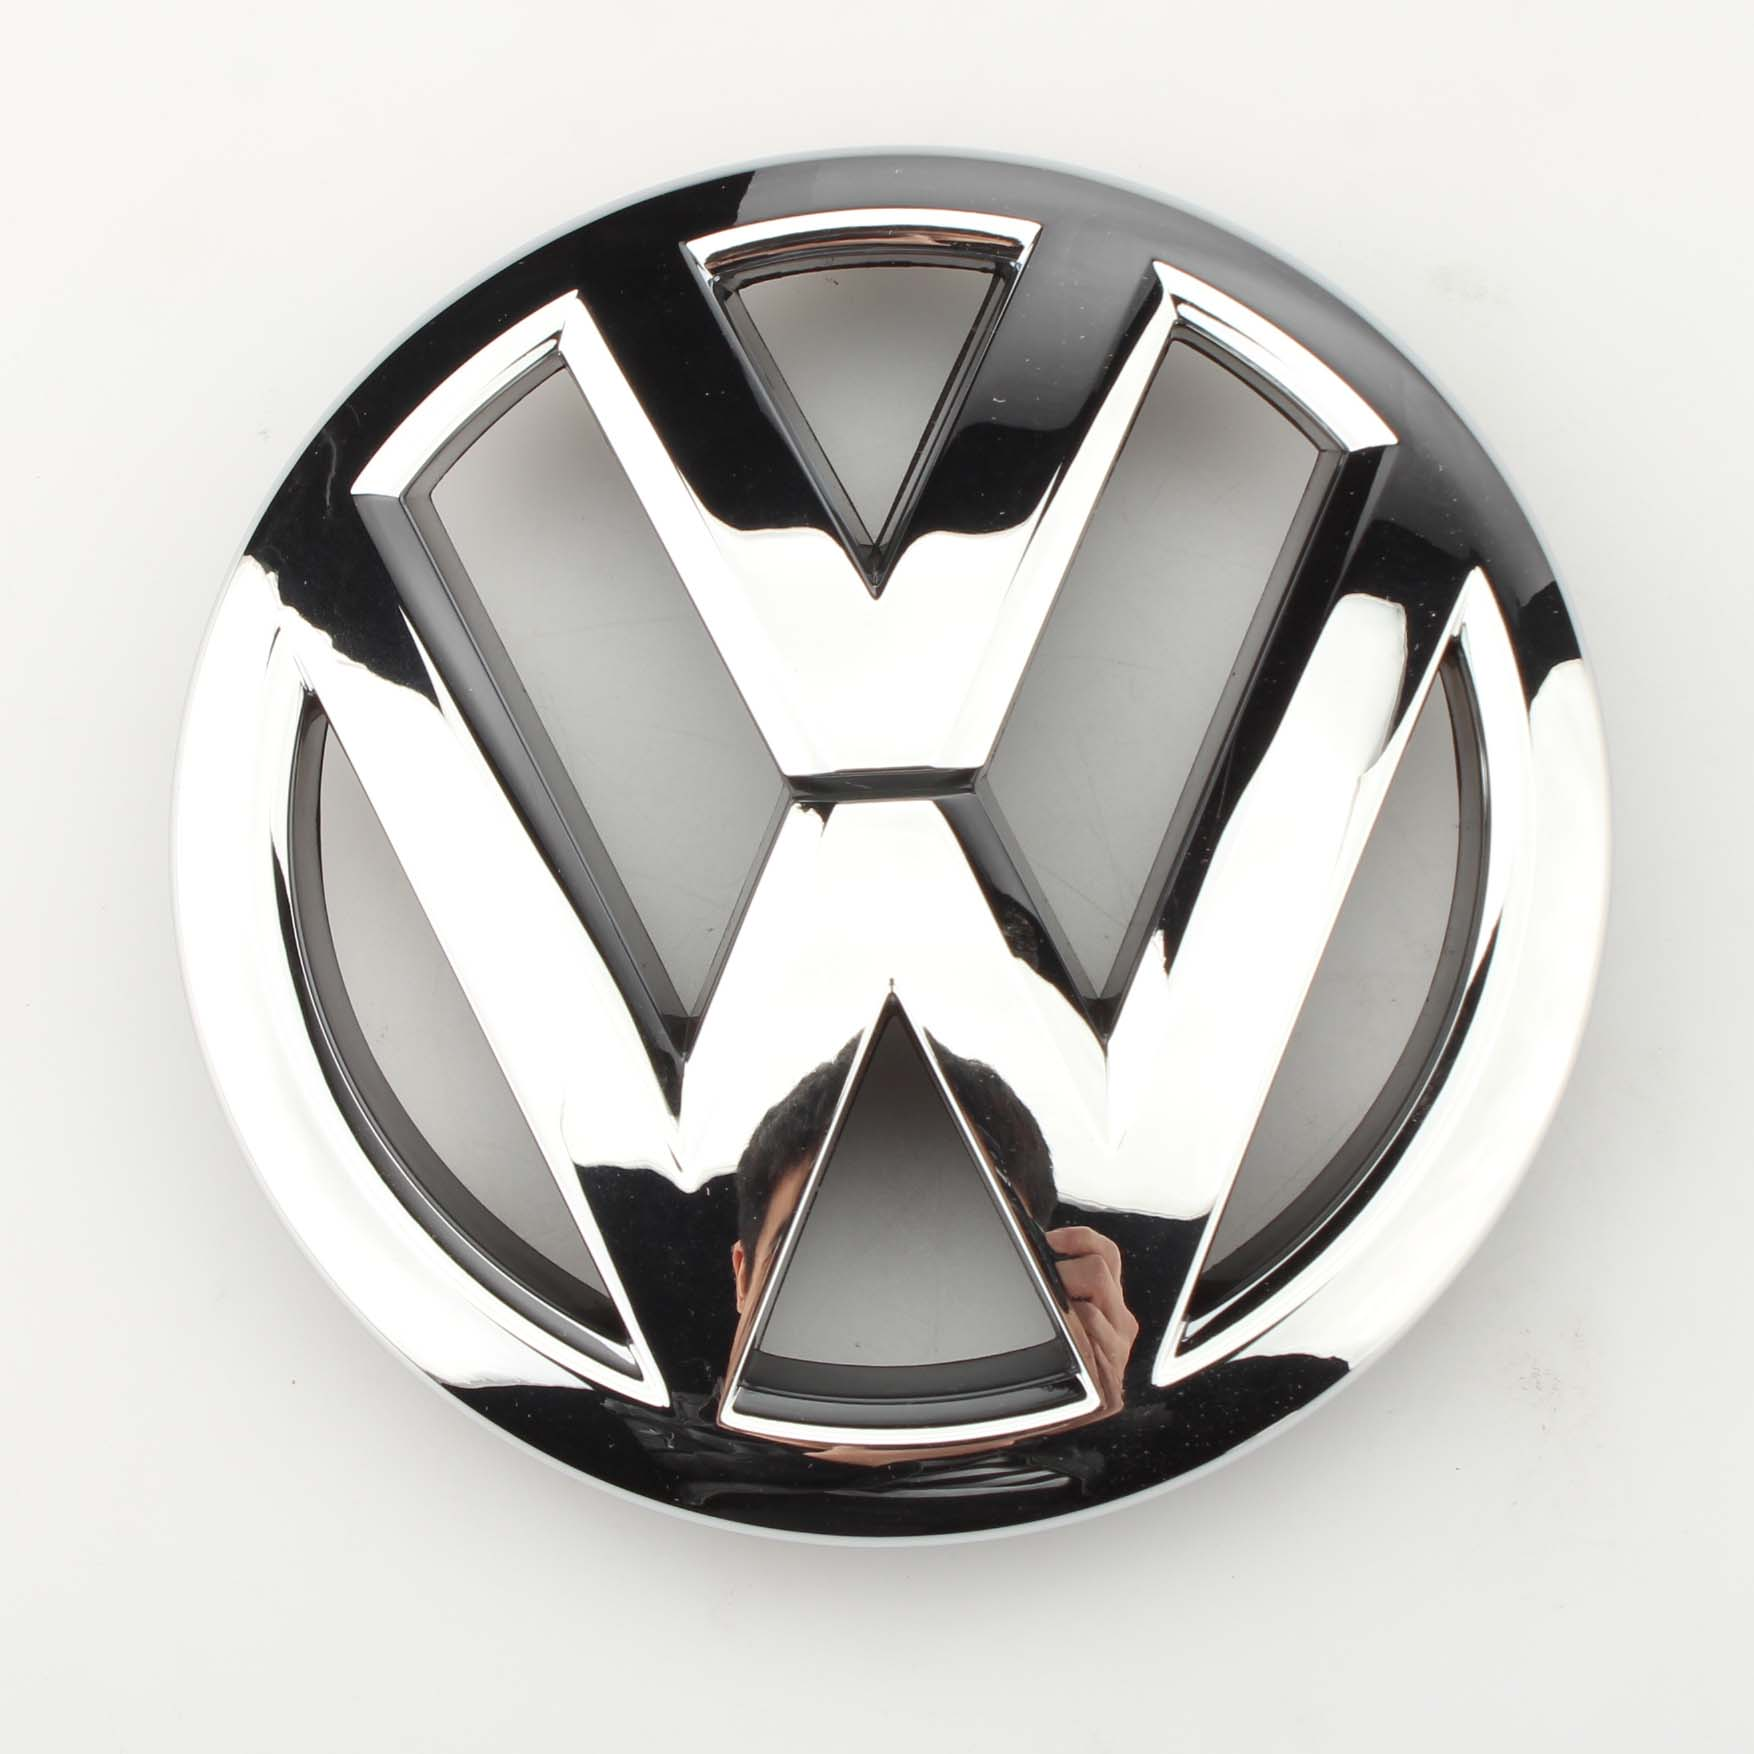 1x OEM Front Grille Grill Emblem Chrome Silver VW Logo Badge for VW Polo/Derby/Vento-IND 2010-2019 6R0 853 600 A ULM new auto car super bee for charger srt8 front grill grille emblem badge 02